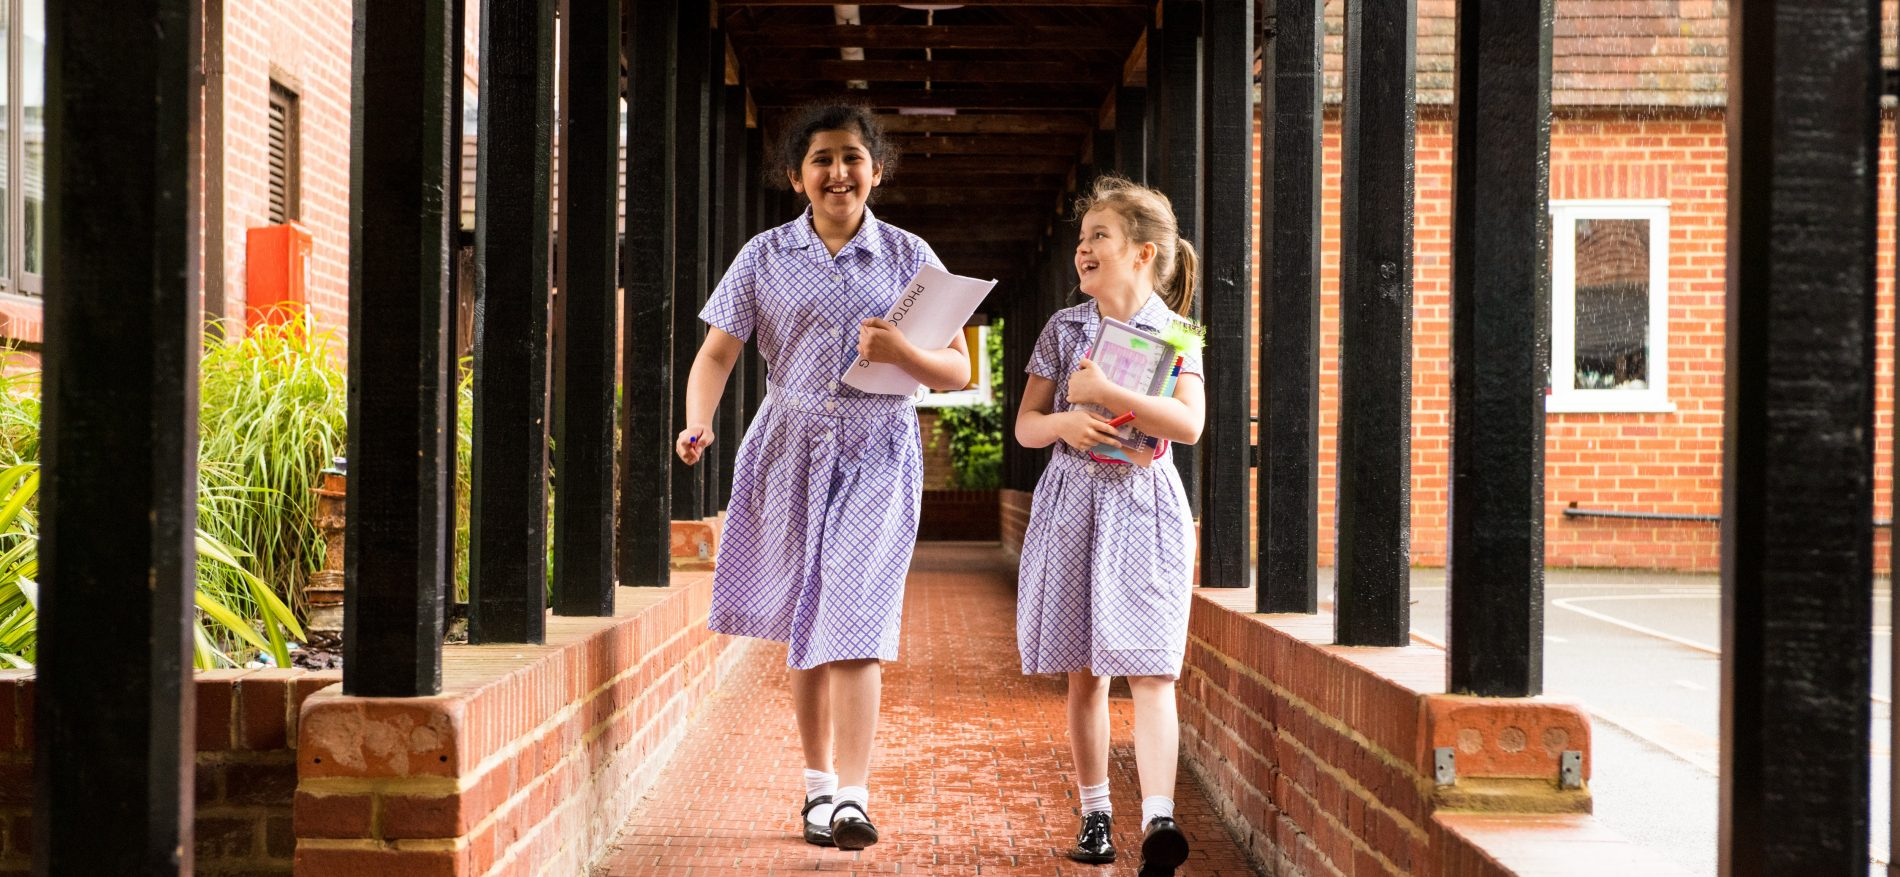 school girls in summer dresses holding books